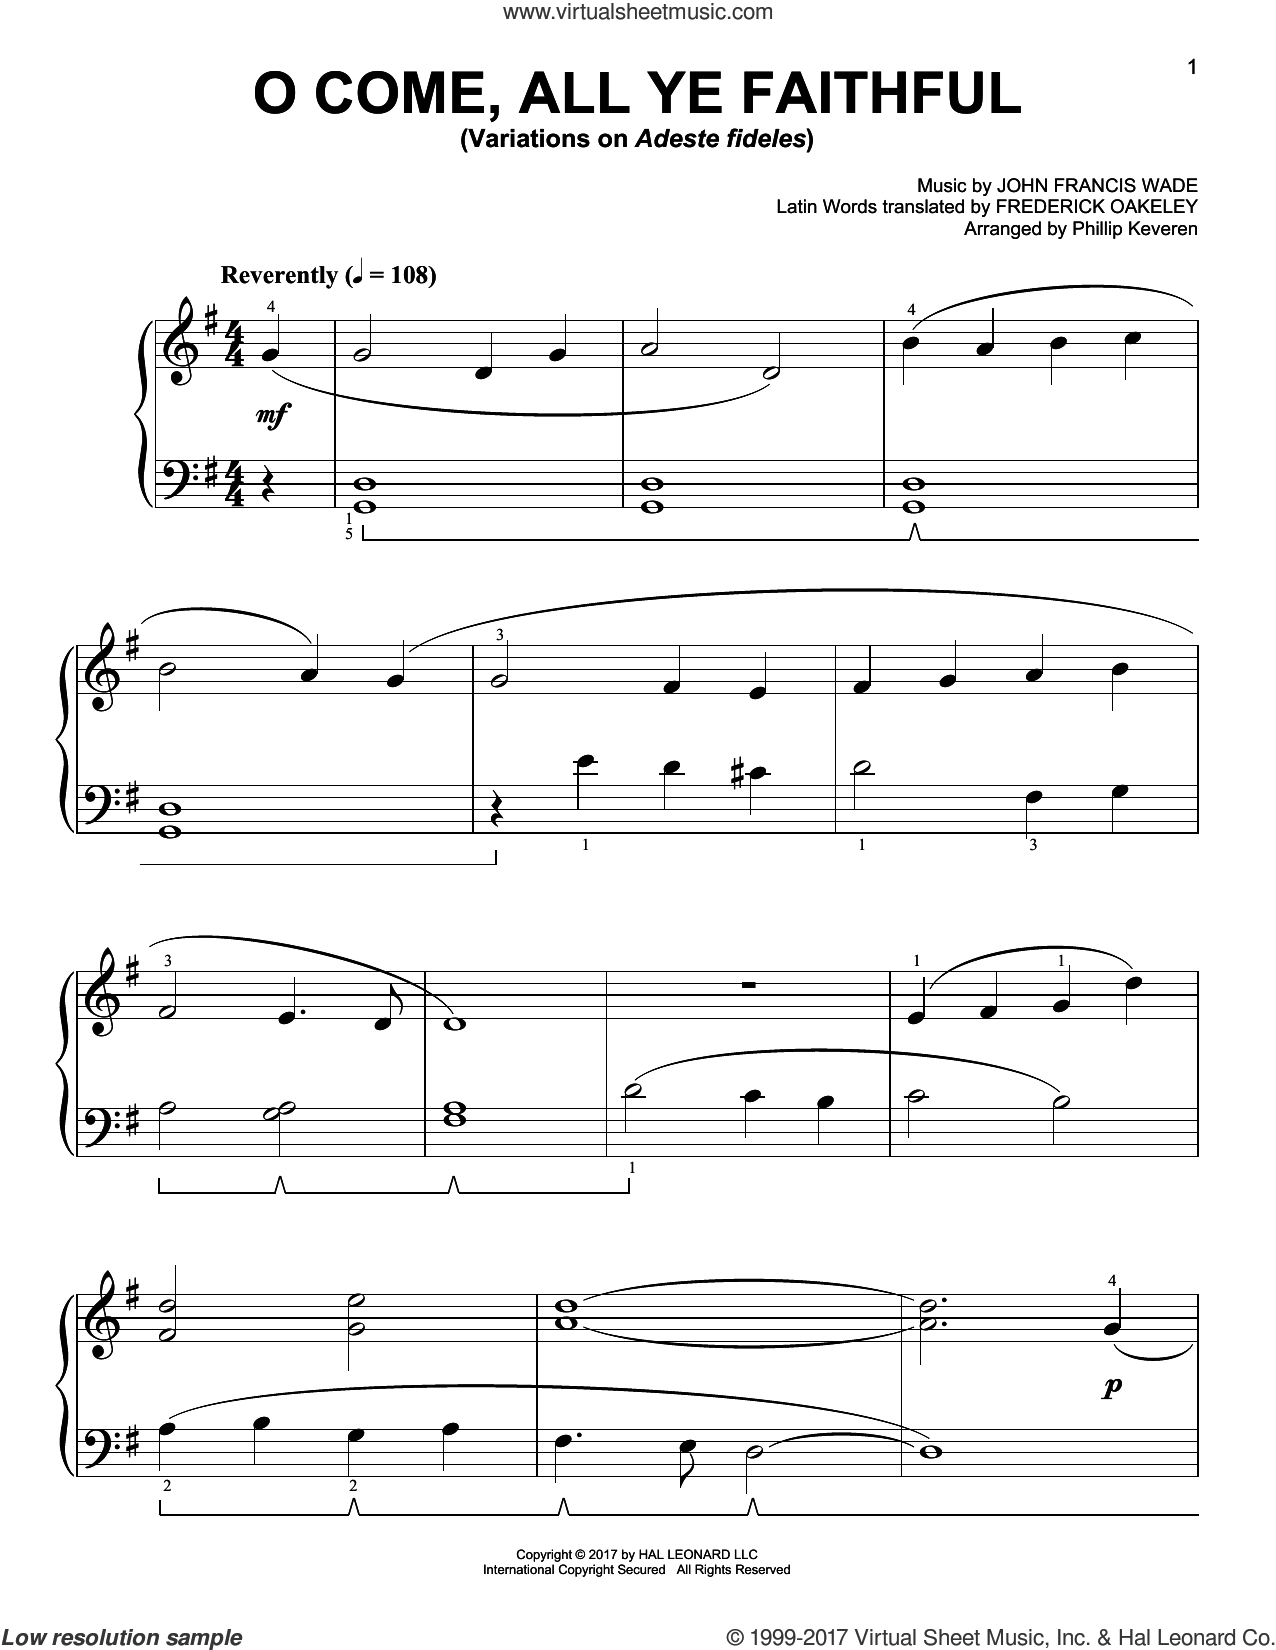 O Come, All Ye Faithful [Classical version] (arr. Phillip Keveren) sheet music for piano solo by John Francis Wade, Phillip Keveren and Frederick Oakeley (English), easy skill level